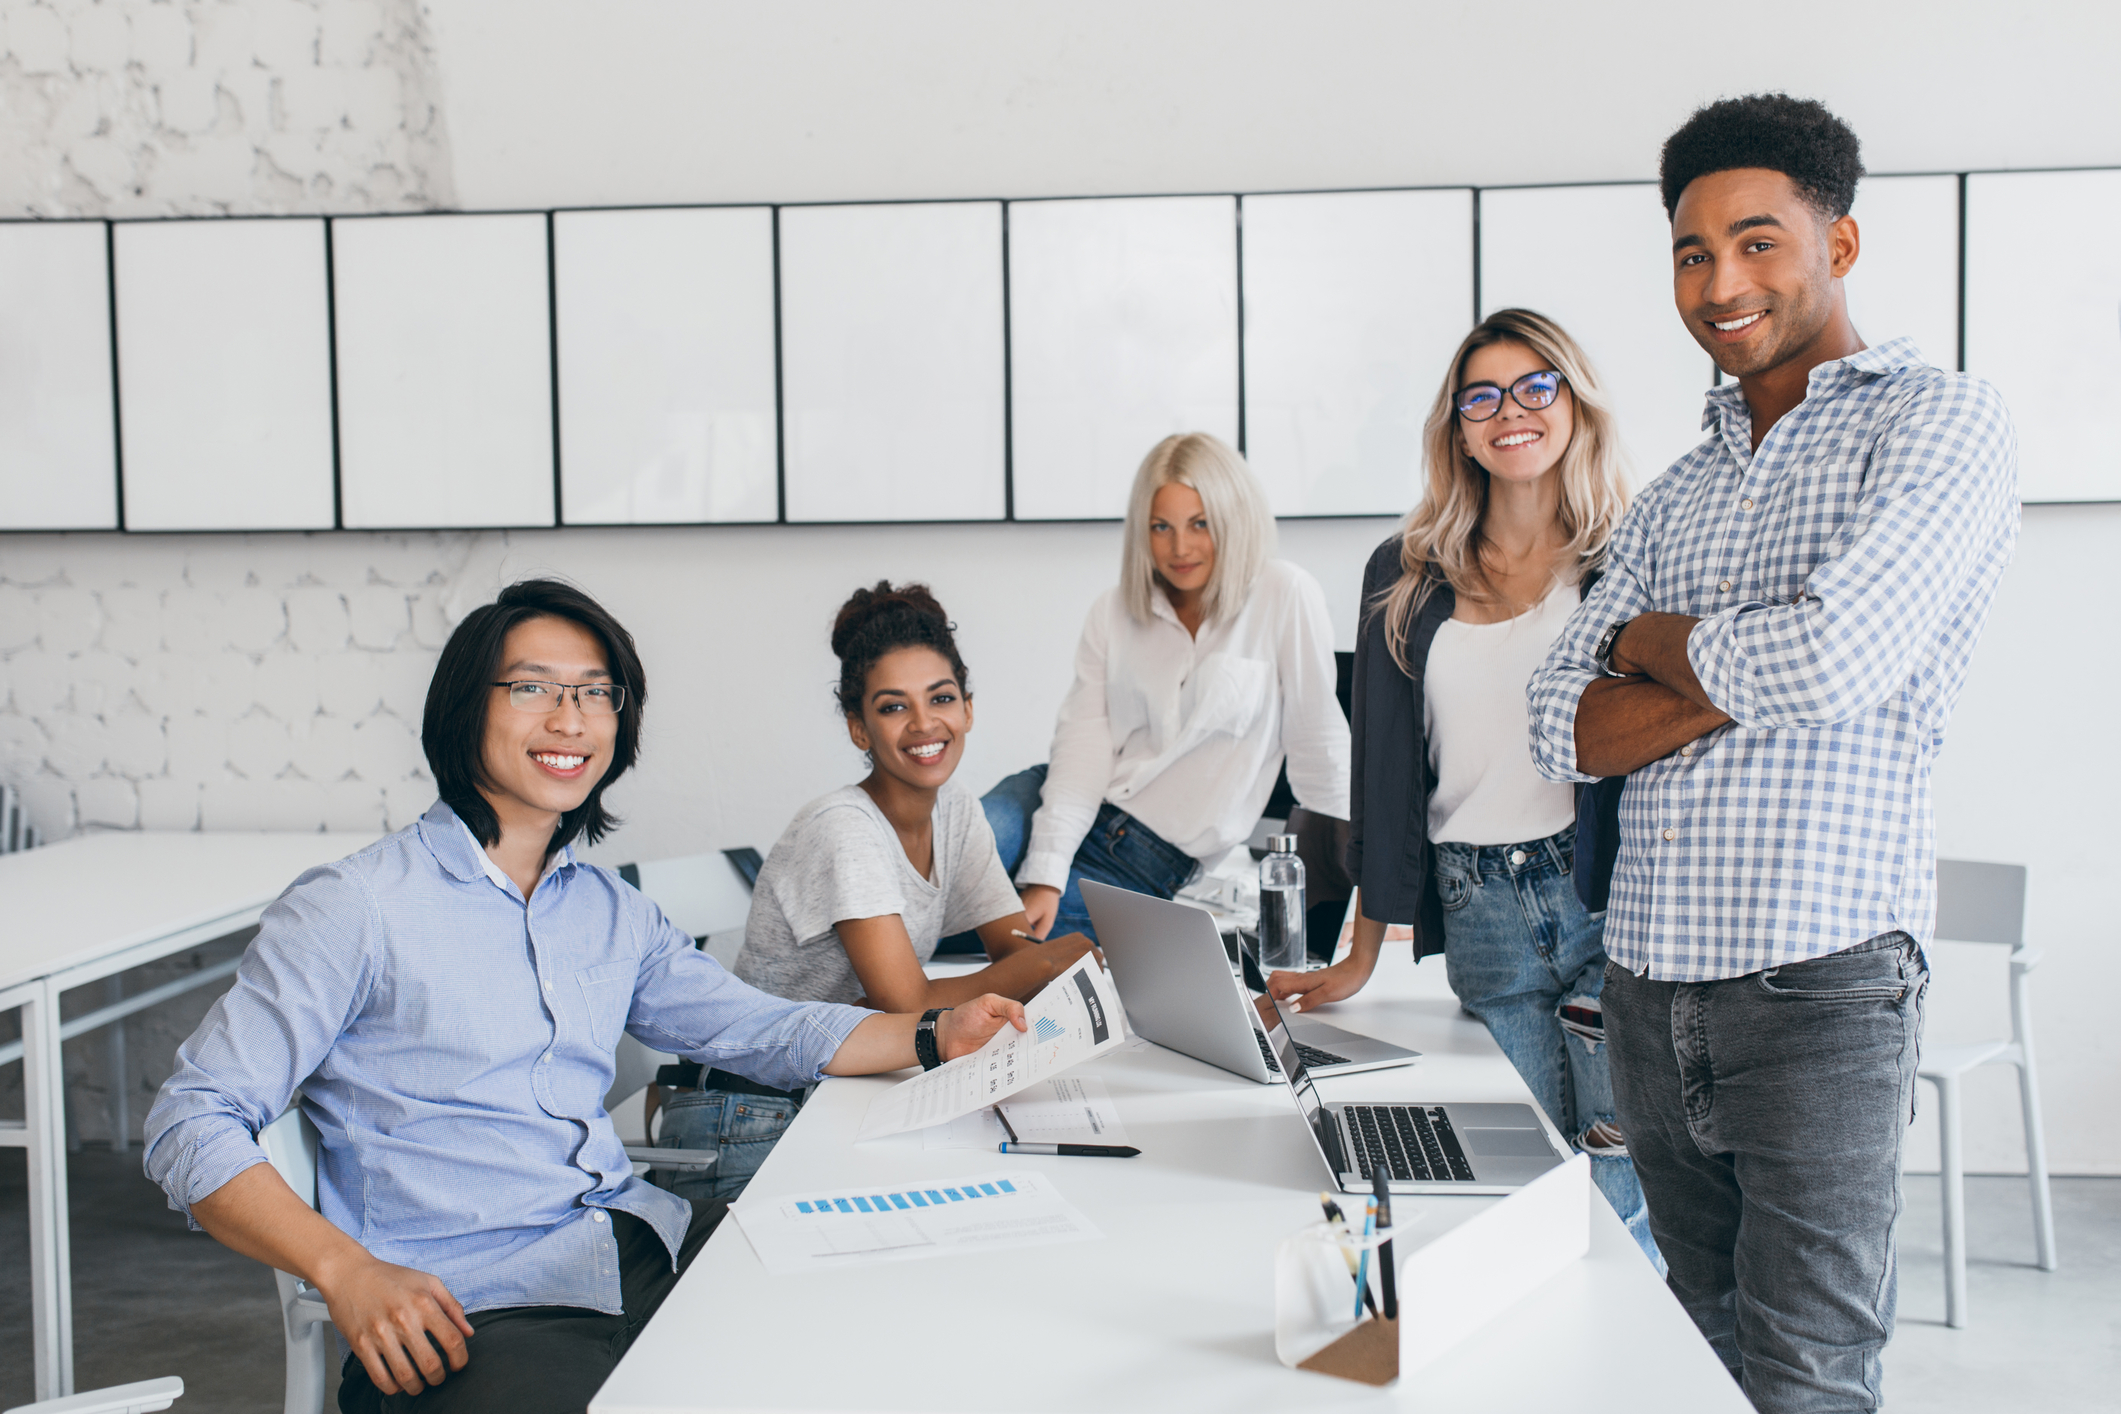 Diverse people working together on computers at a table in office Bridging the diversity gap in tech